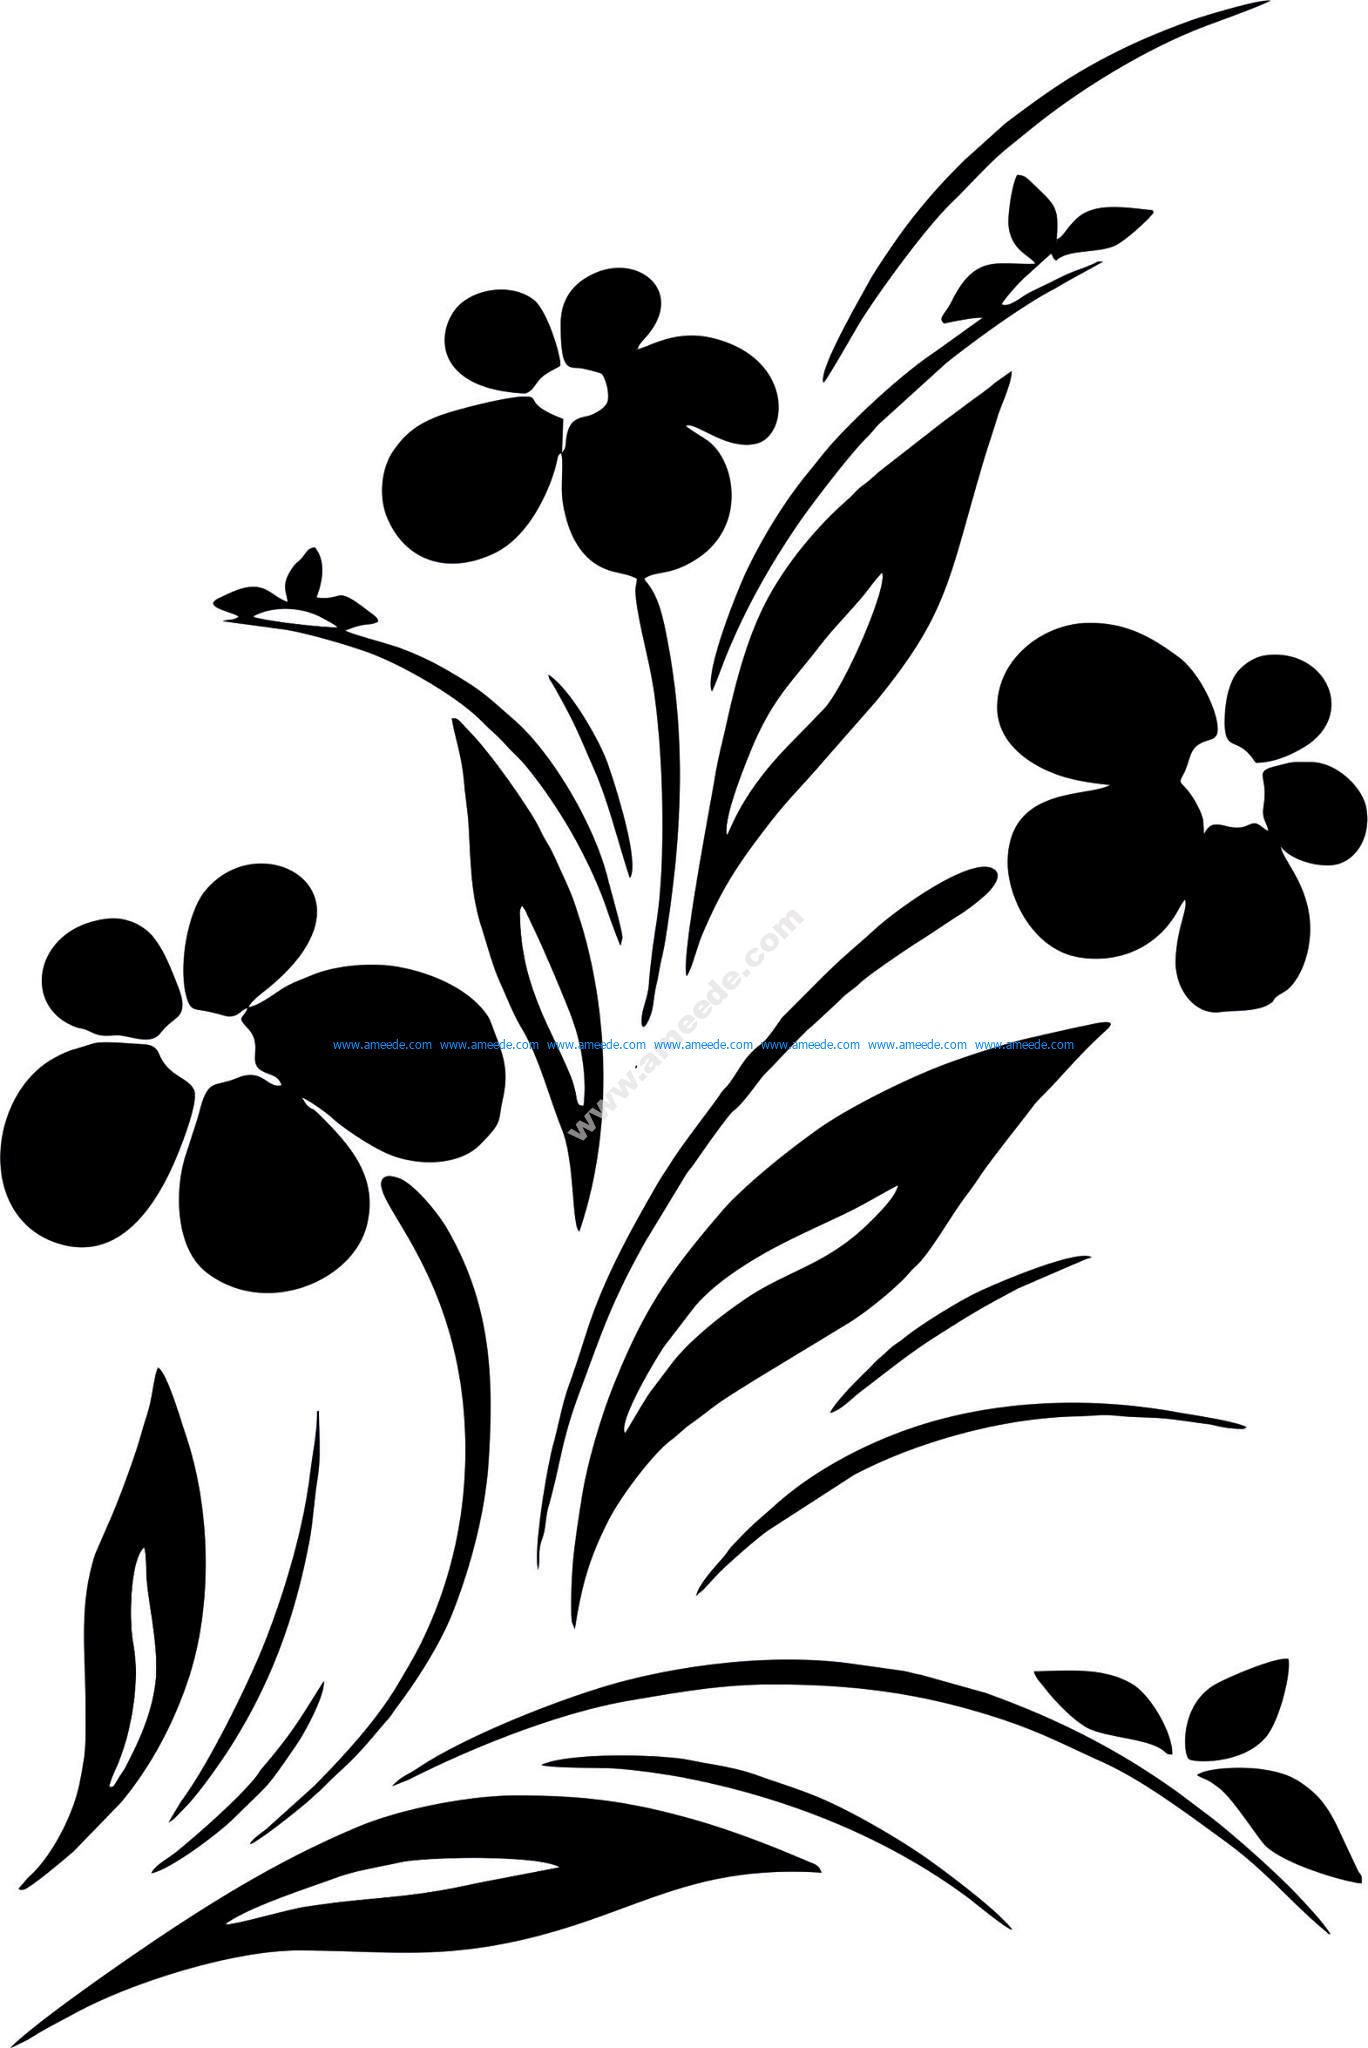 Simple Flower Designs Black And White Vector Art Jpg Download Free